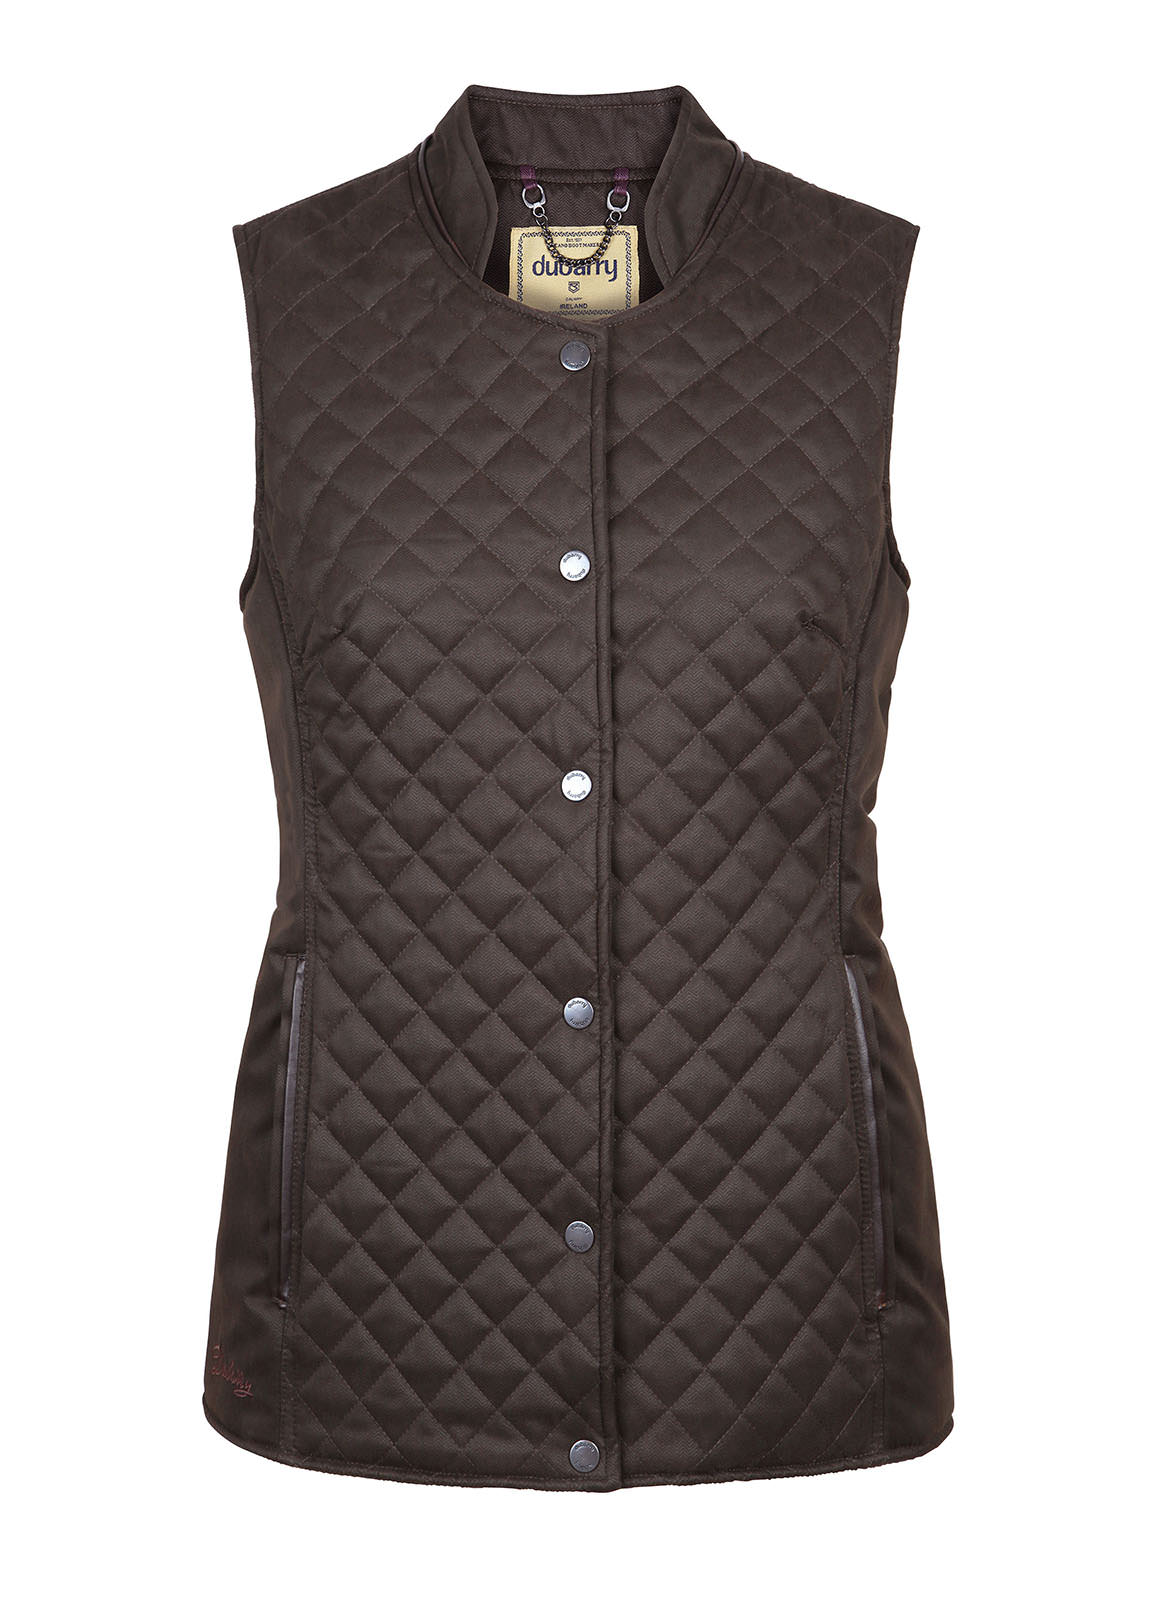 Dubarry_ Wilde Womens Quilted Gilet - Verdigris_Image_2